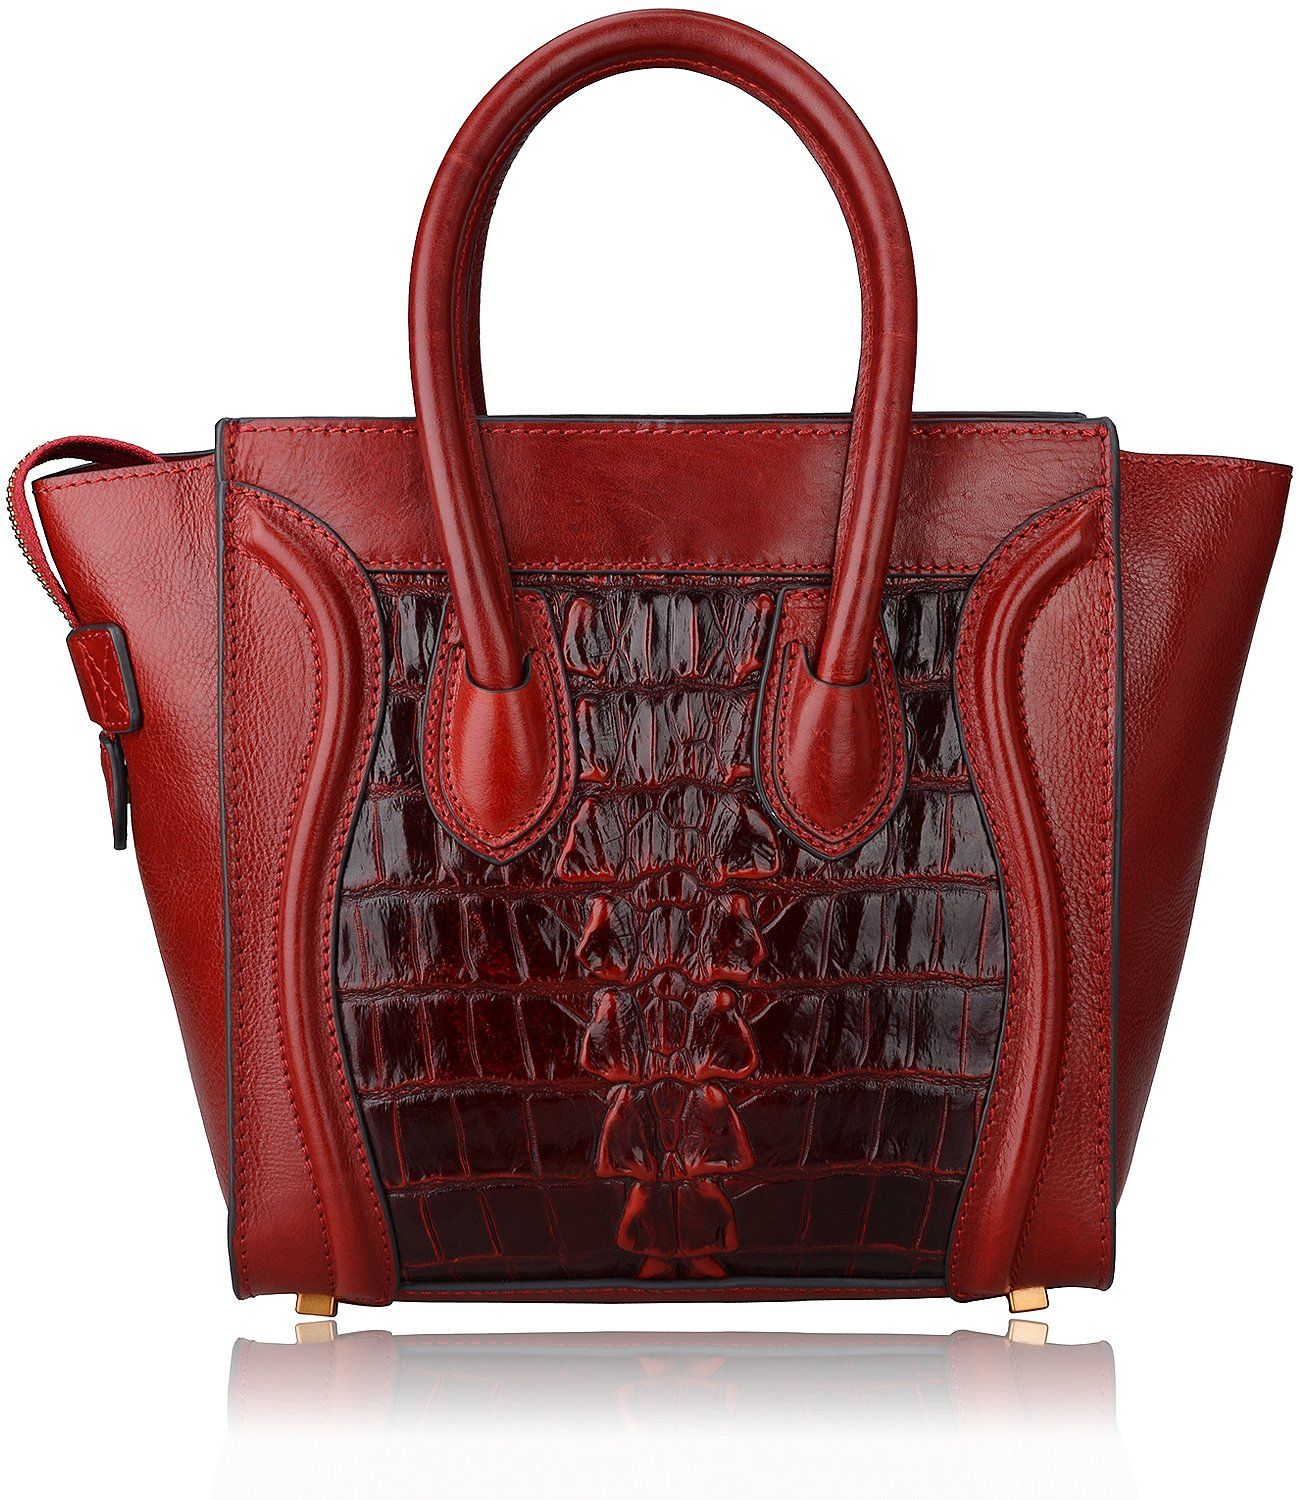 Pijushi Simple Euro Style Ladies Bags Crocodile Embossed Leather Tote Purse  Top Handle Handbags for Women (Model 6011, New Small size Tail Red) b17c2335b0